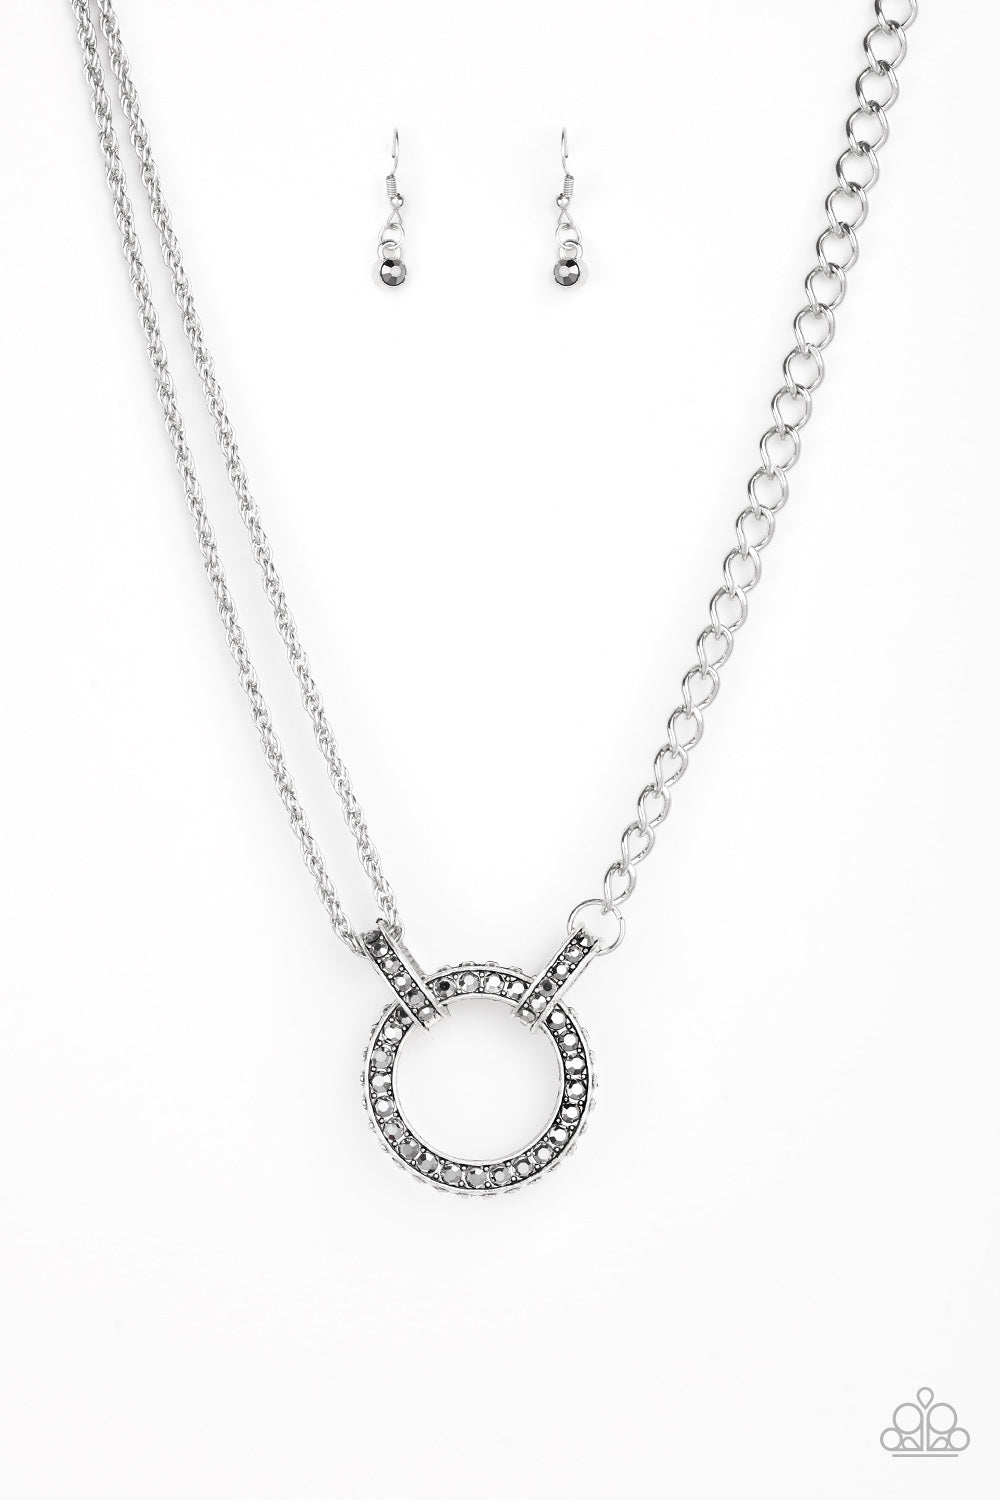 Razzle Dazzle Paparazzi Necklace-White